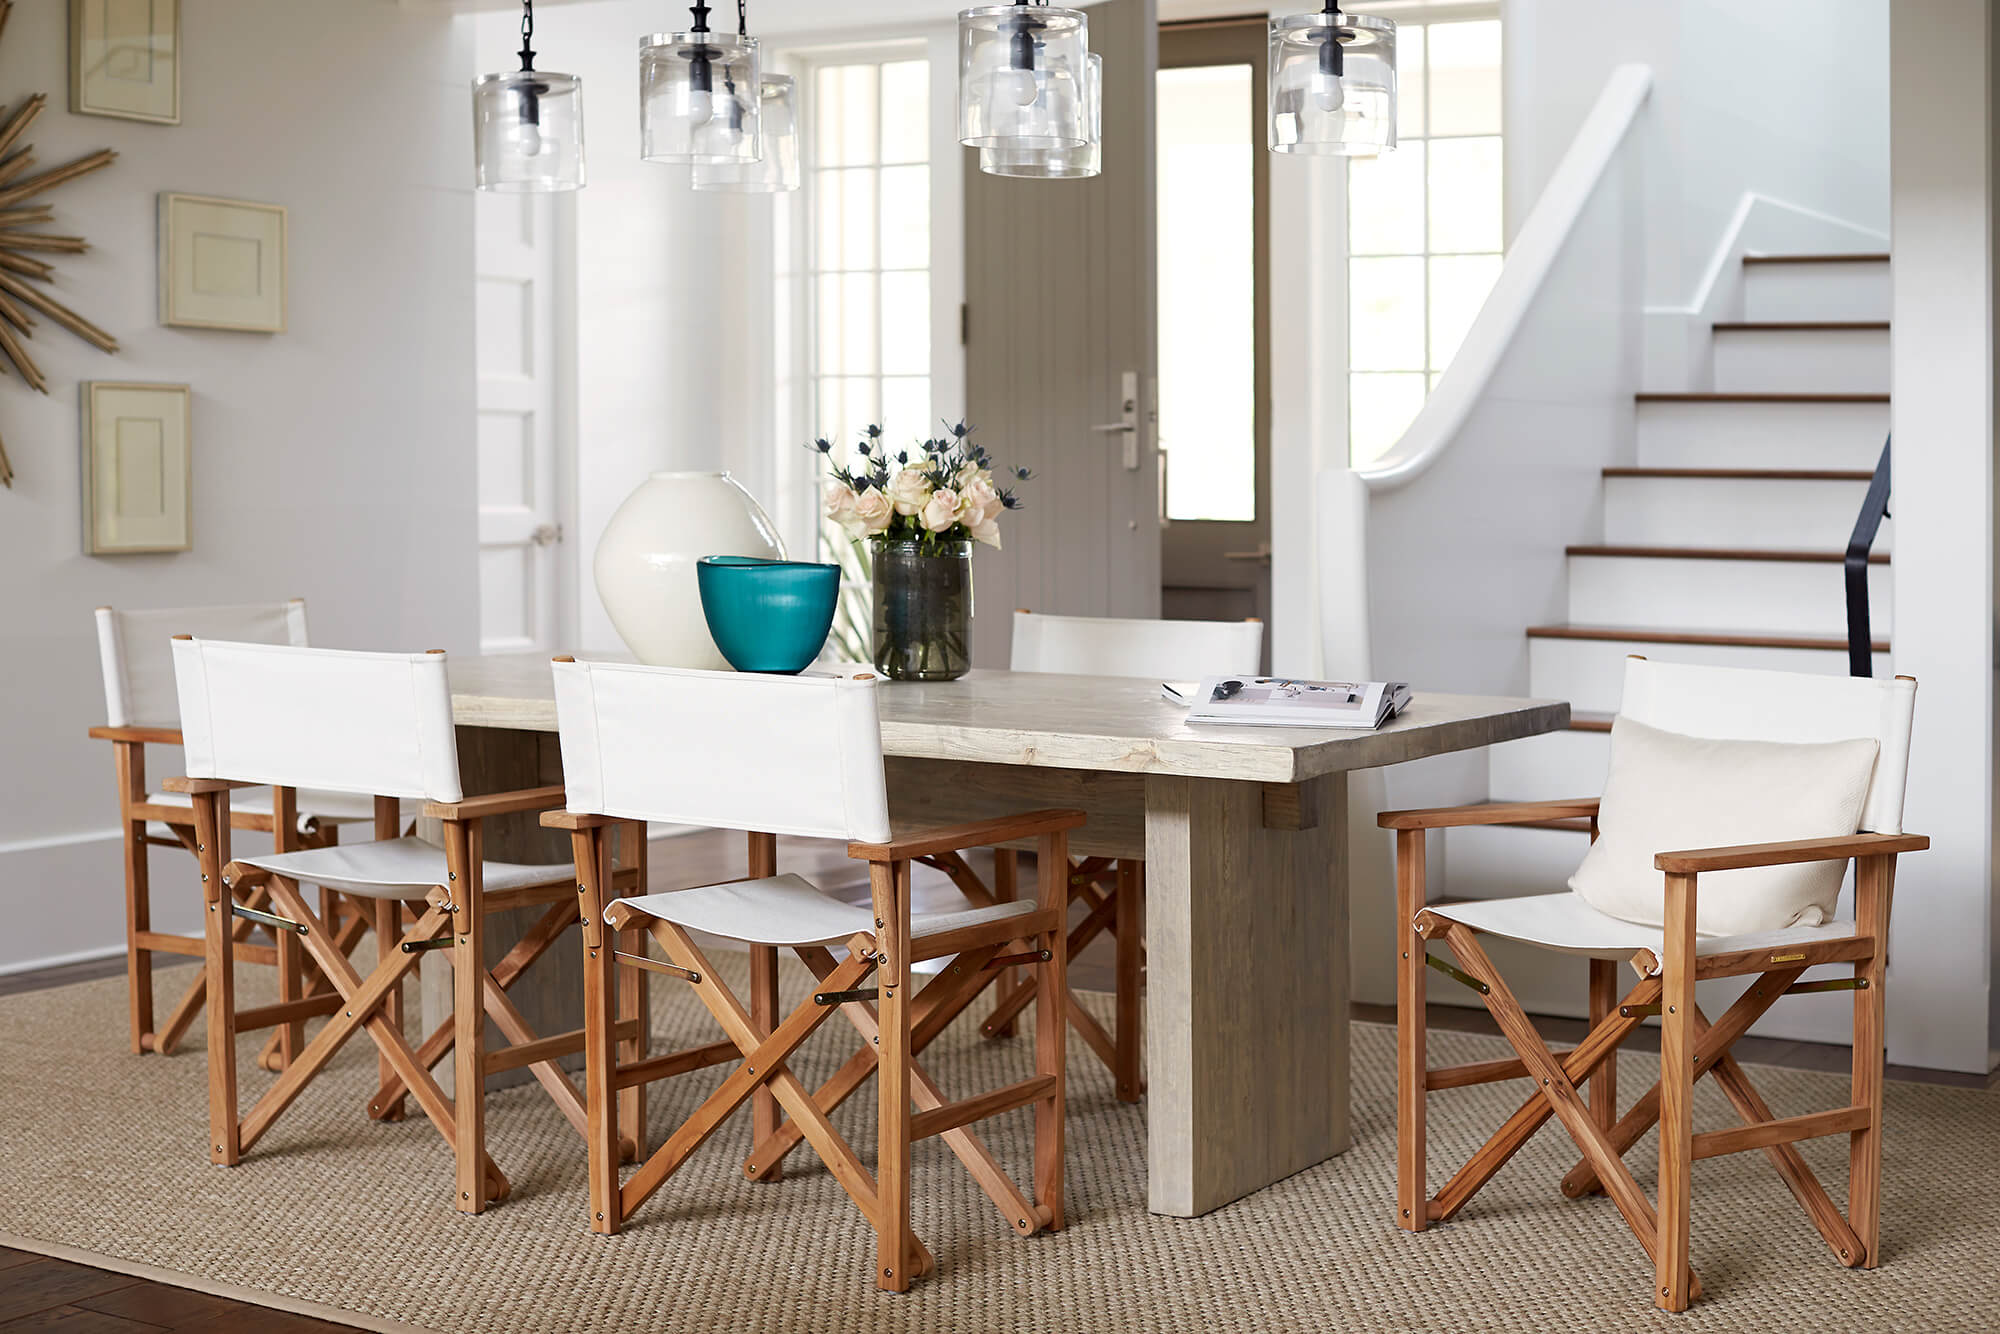 White directors chairs surround an indoor dining table